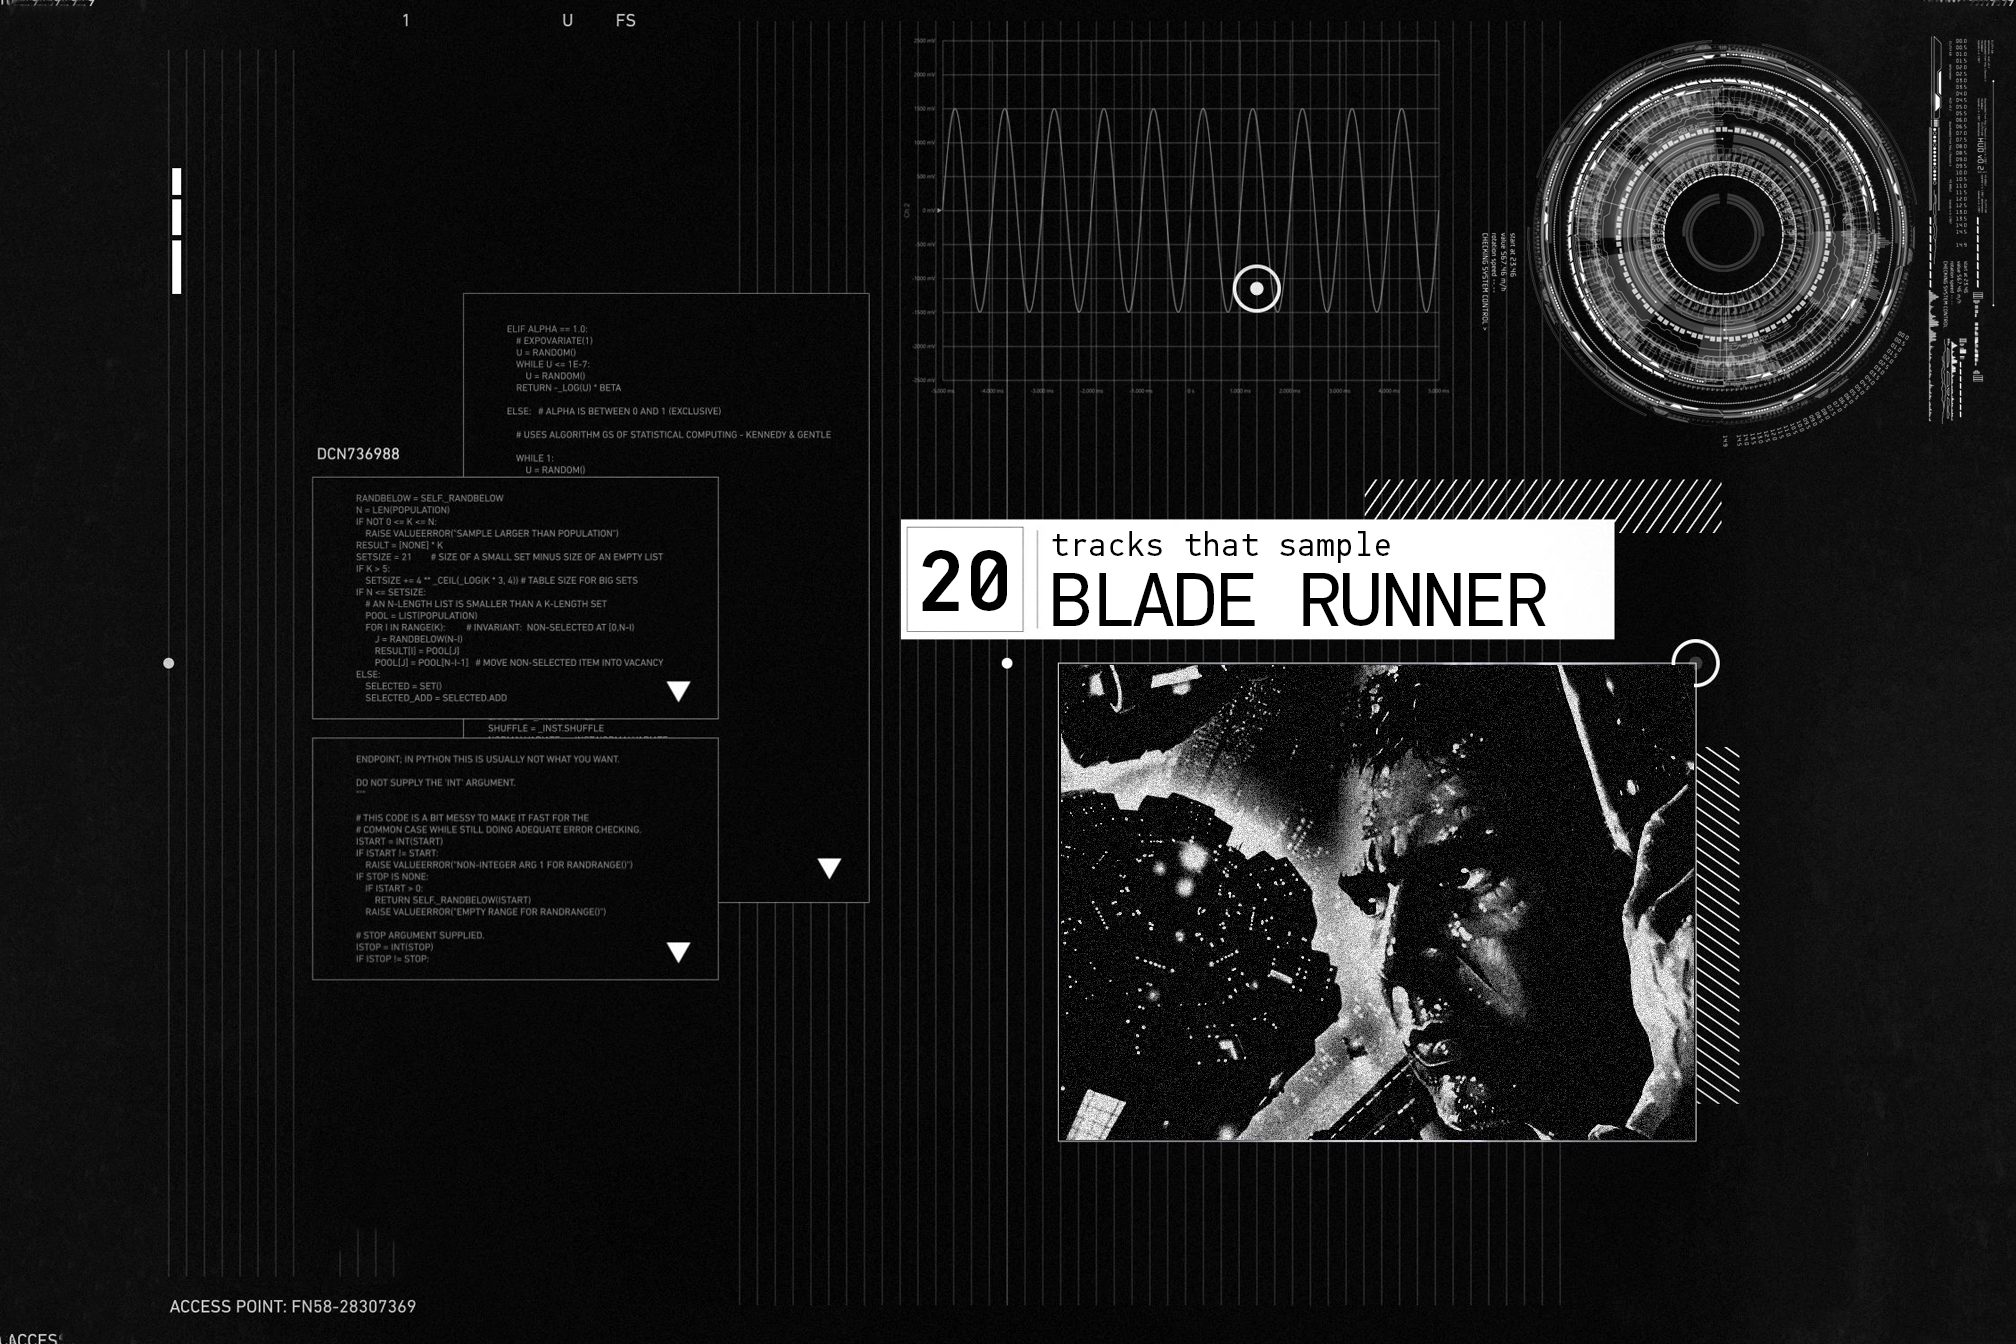 20 of the best tracks that sample Blade Runner - Lists - Mixmag